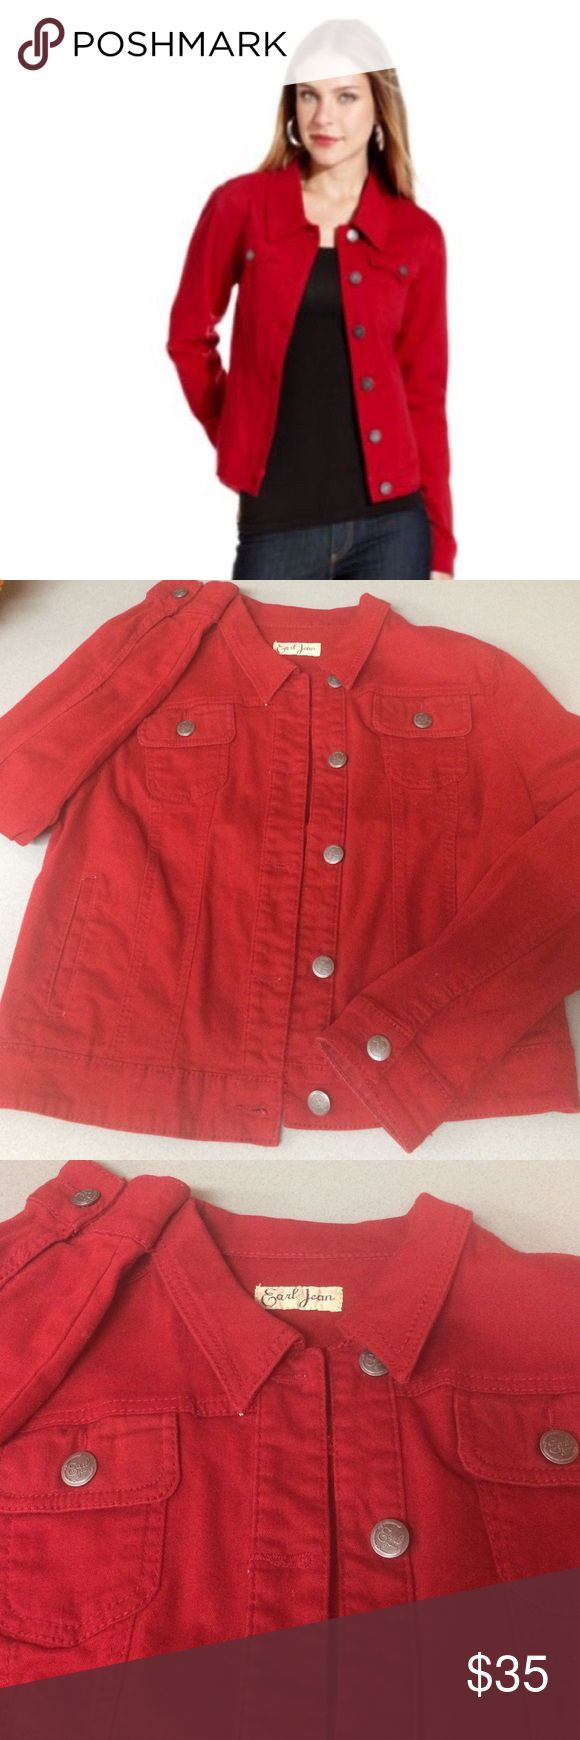 Red denim jacket Great jacket that sets off any outfit! Jackets & Coats